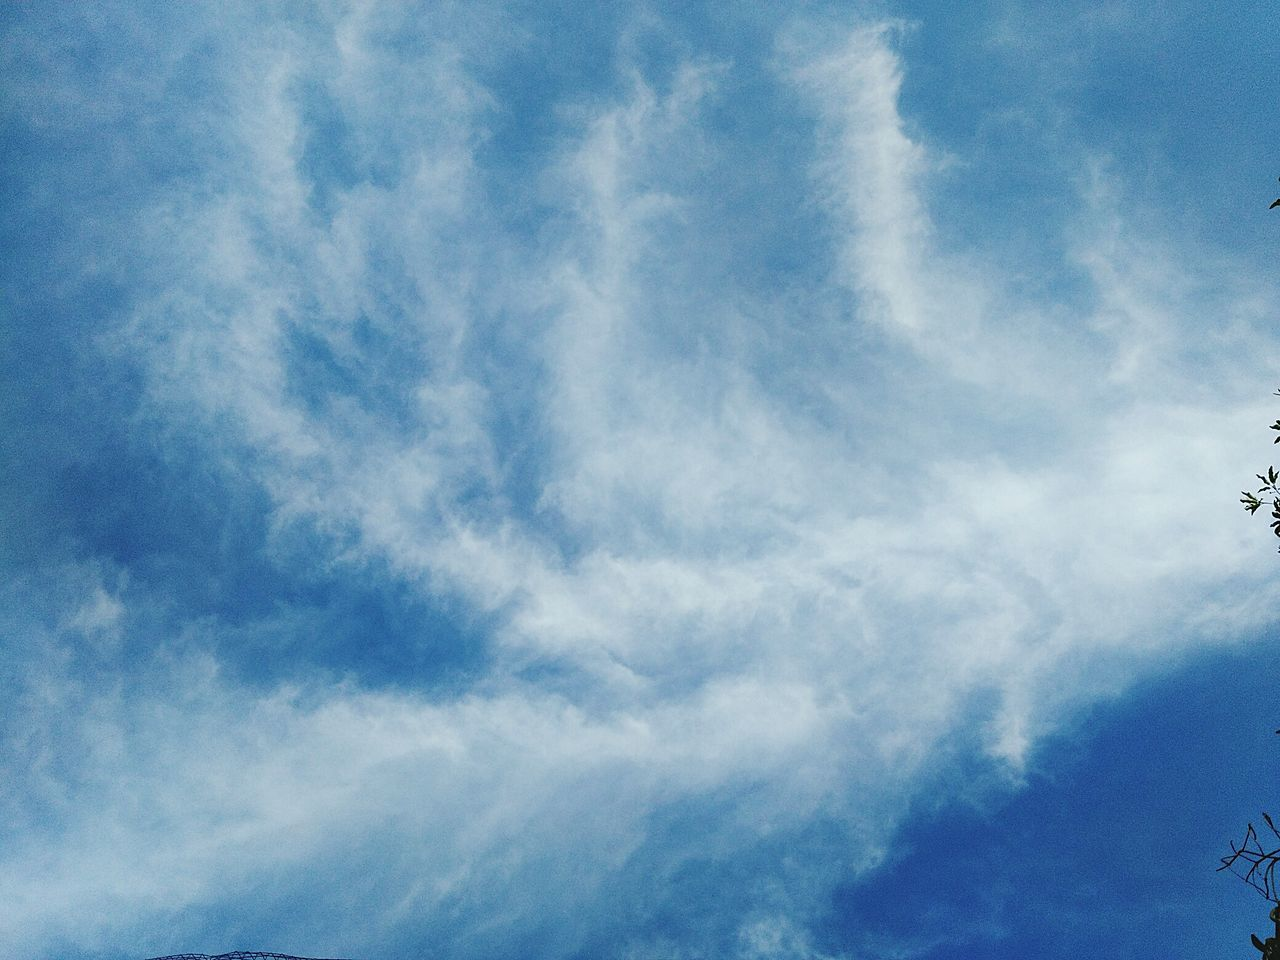 low angle view, sky, beauty in nature, blue, cloud - sky, nature, day, sky only, no people, scenics, outdoors, tranquility, backgrounds